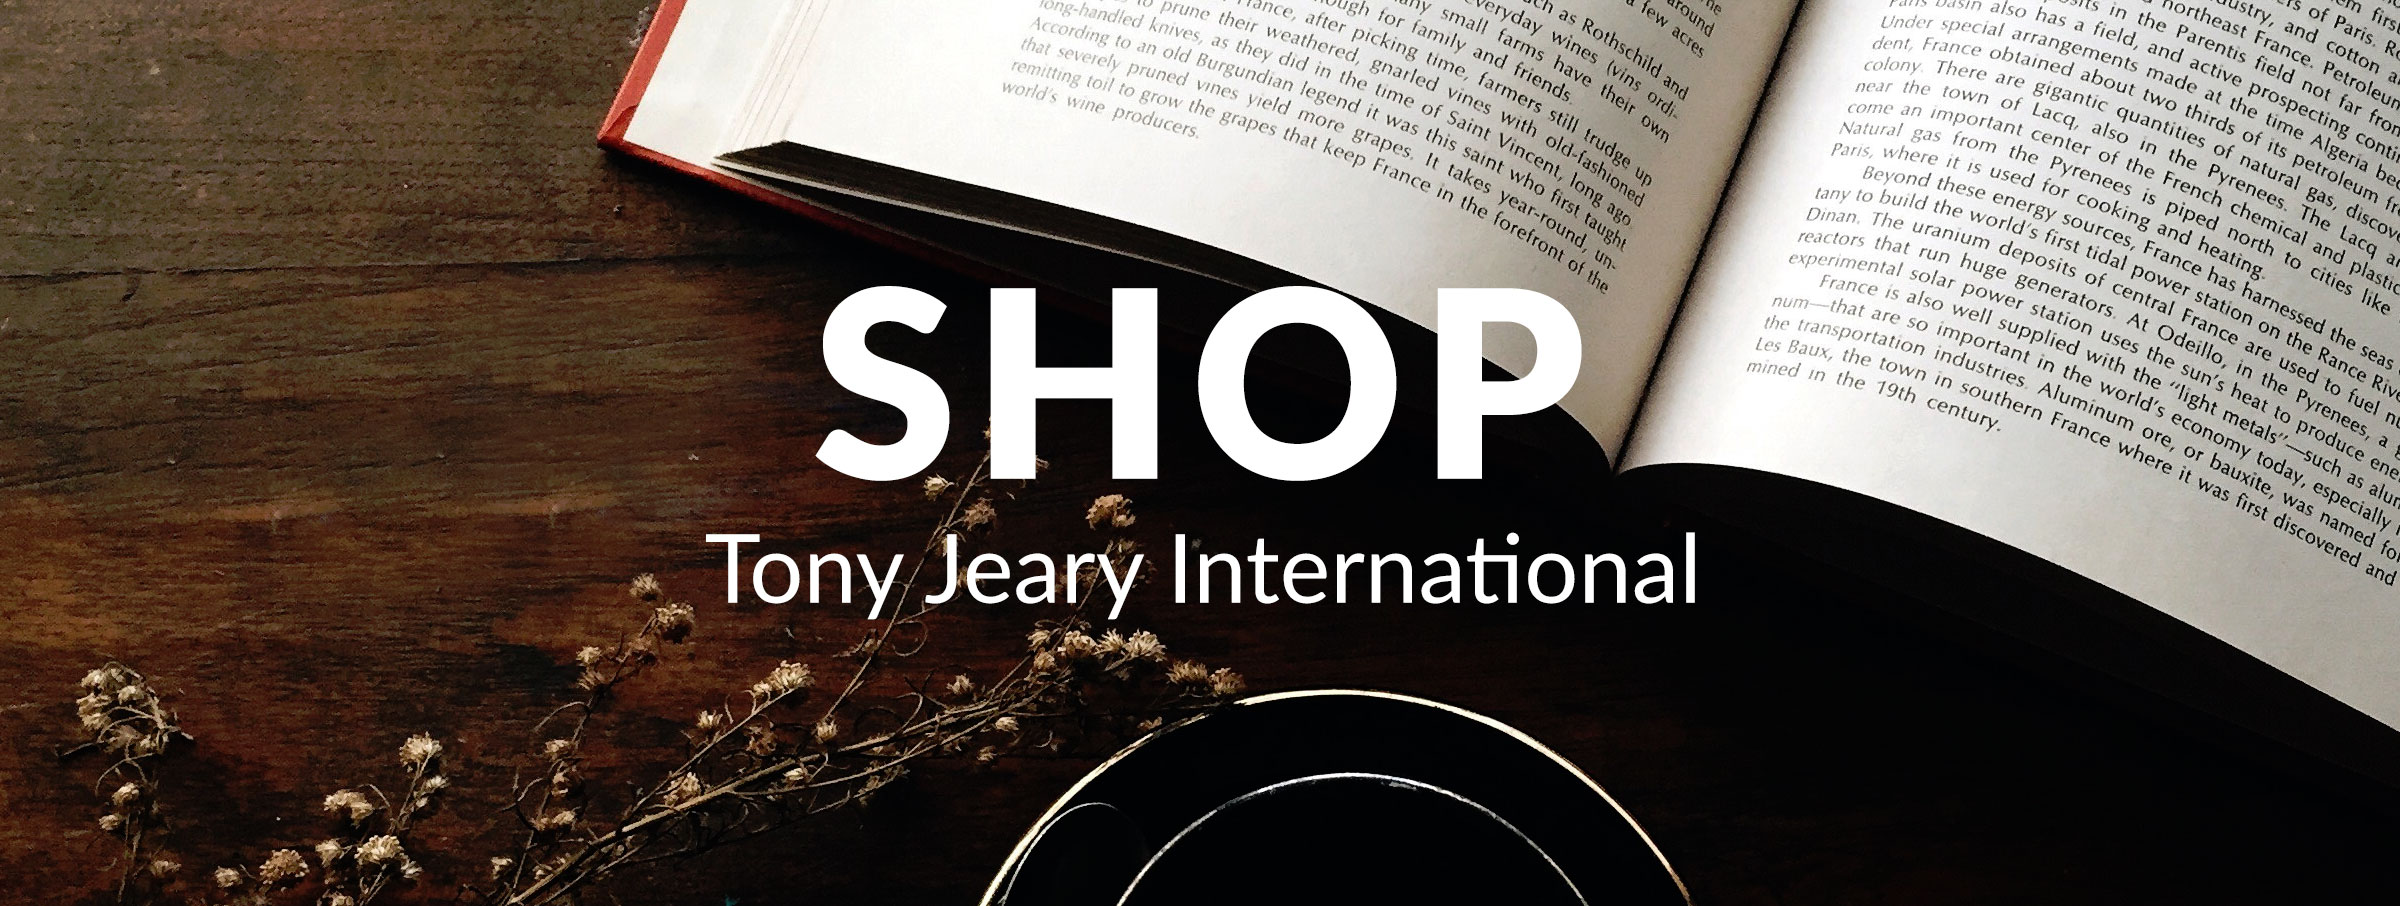 Shop Tony Jeary Interational